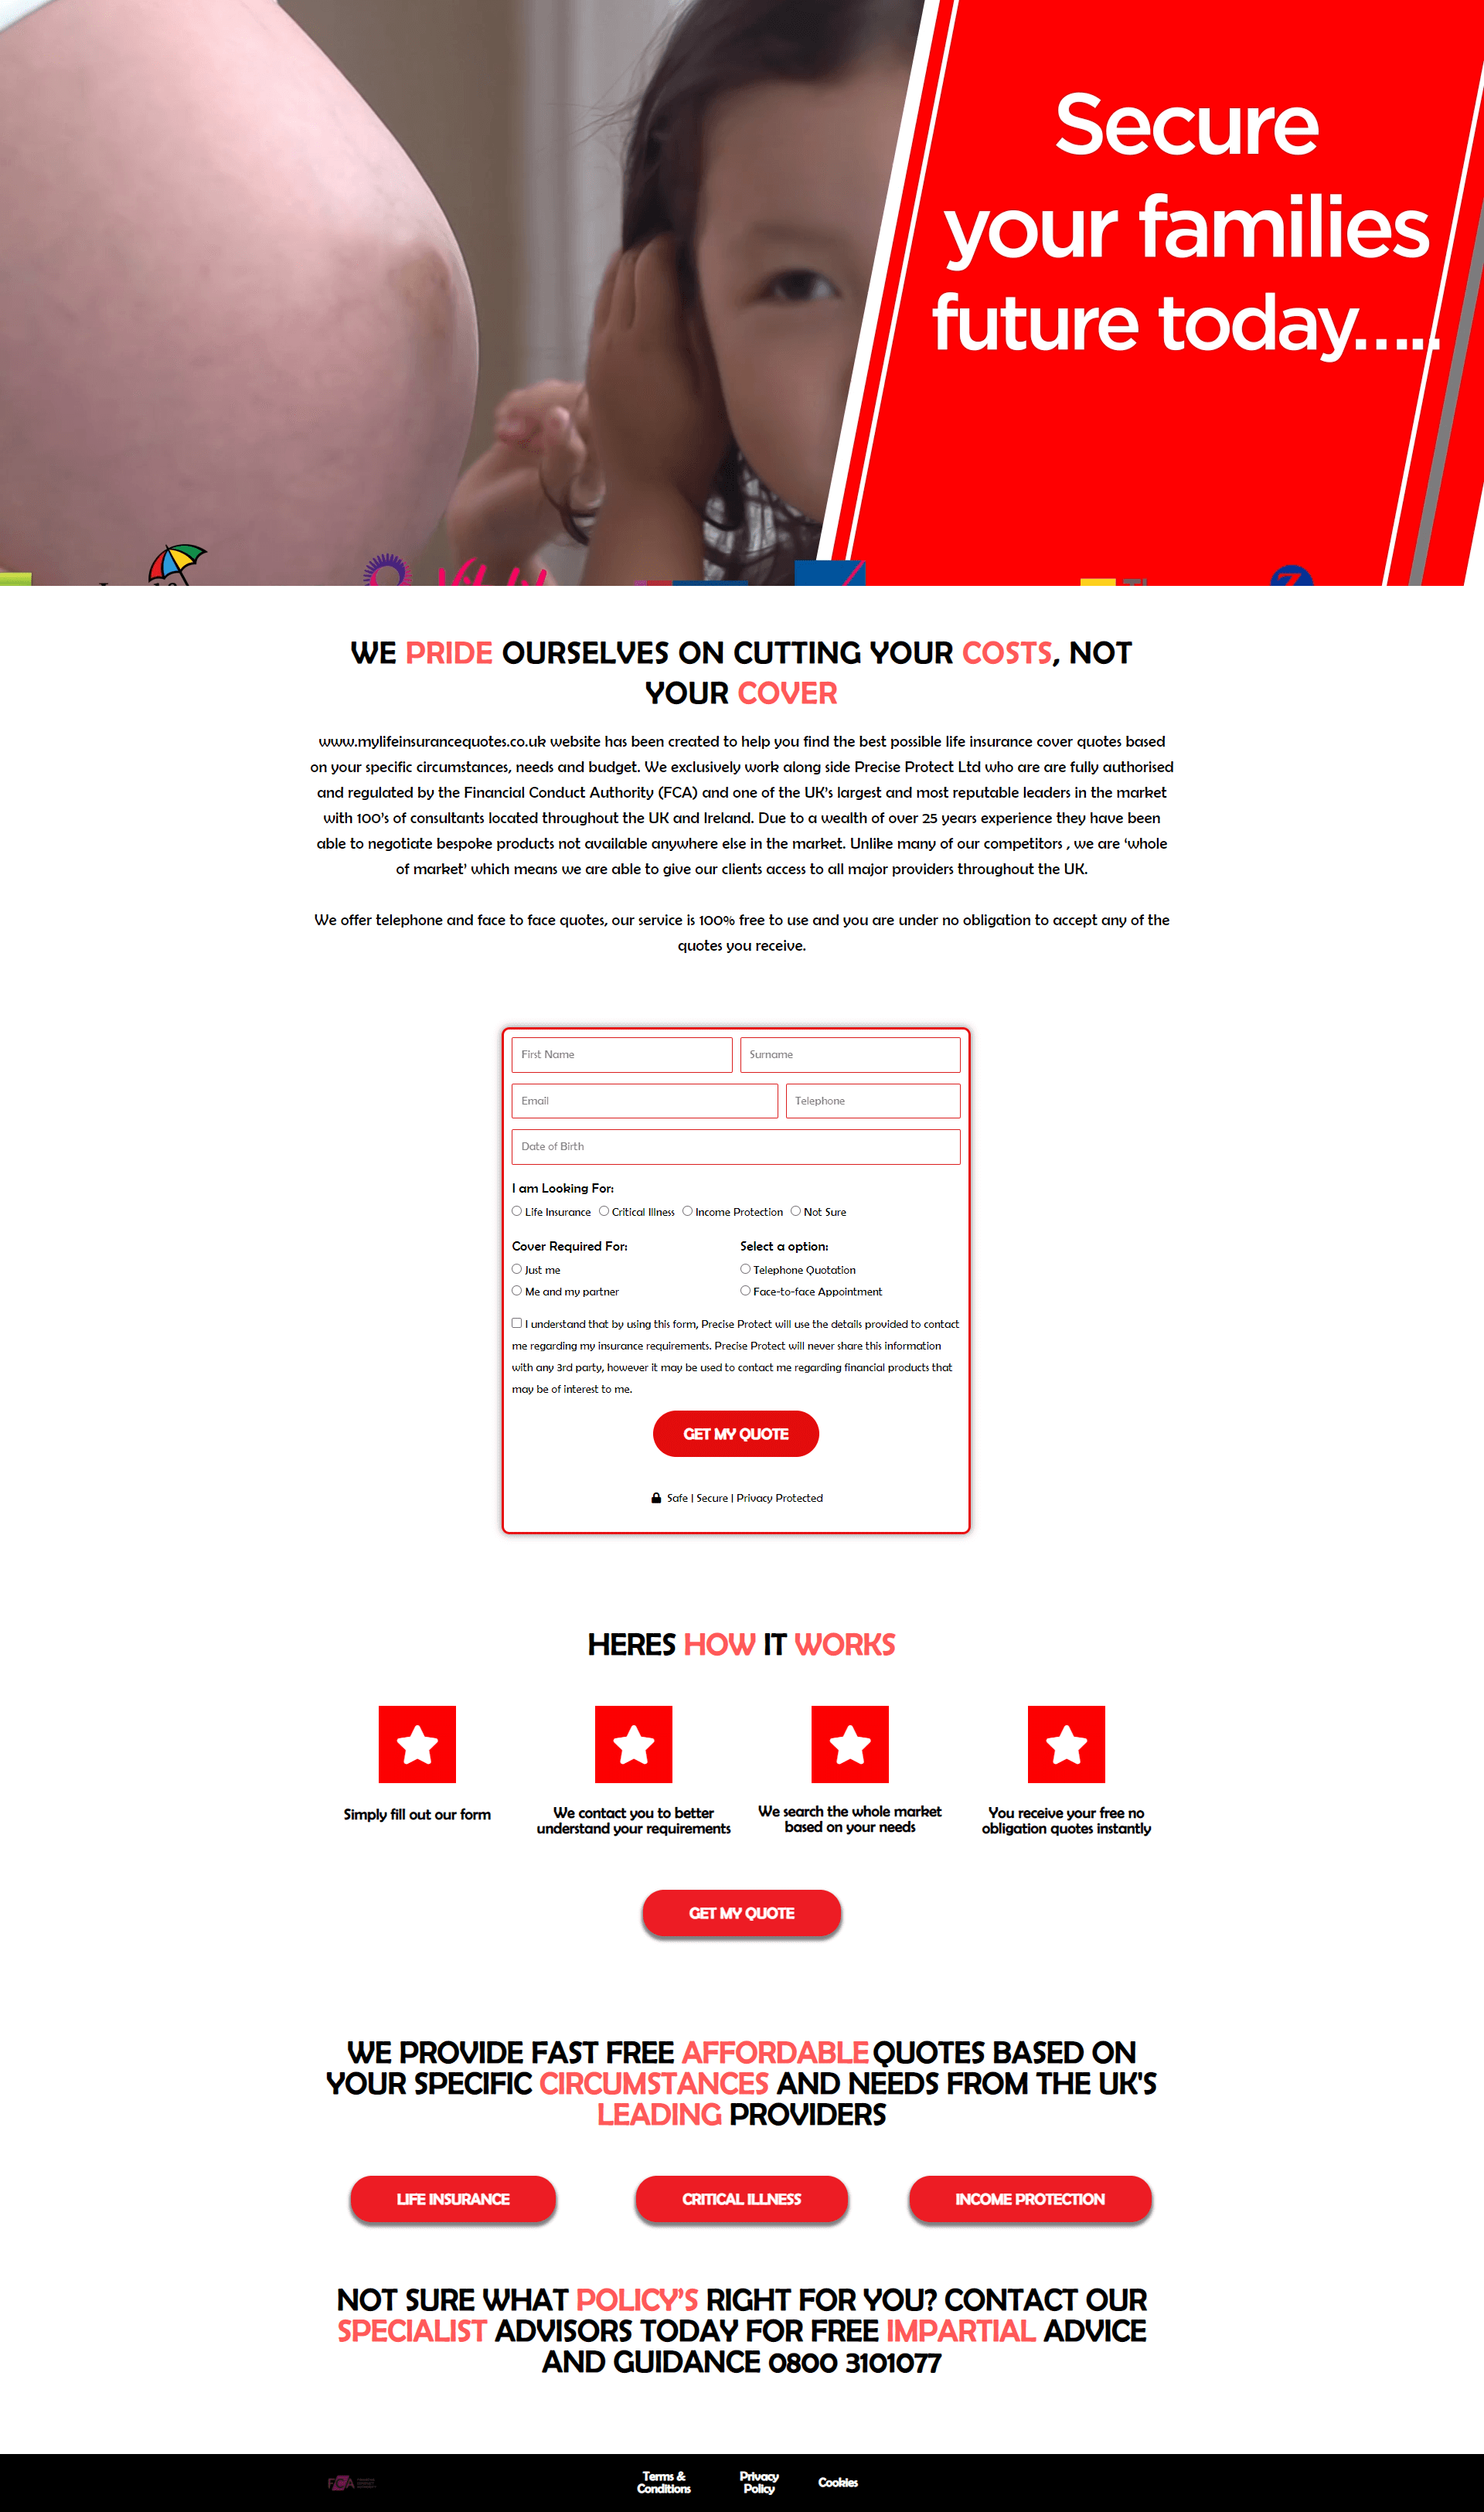 covered4life-co-uk-Landing Page